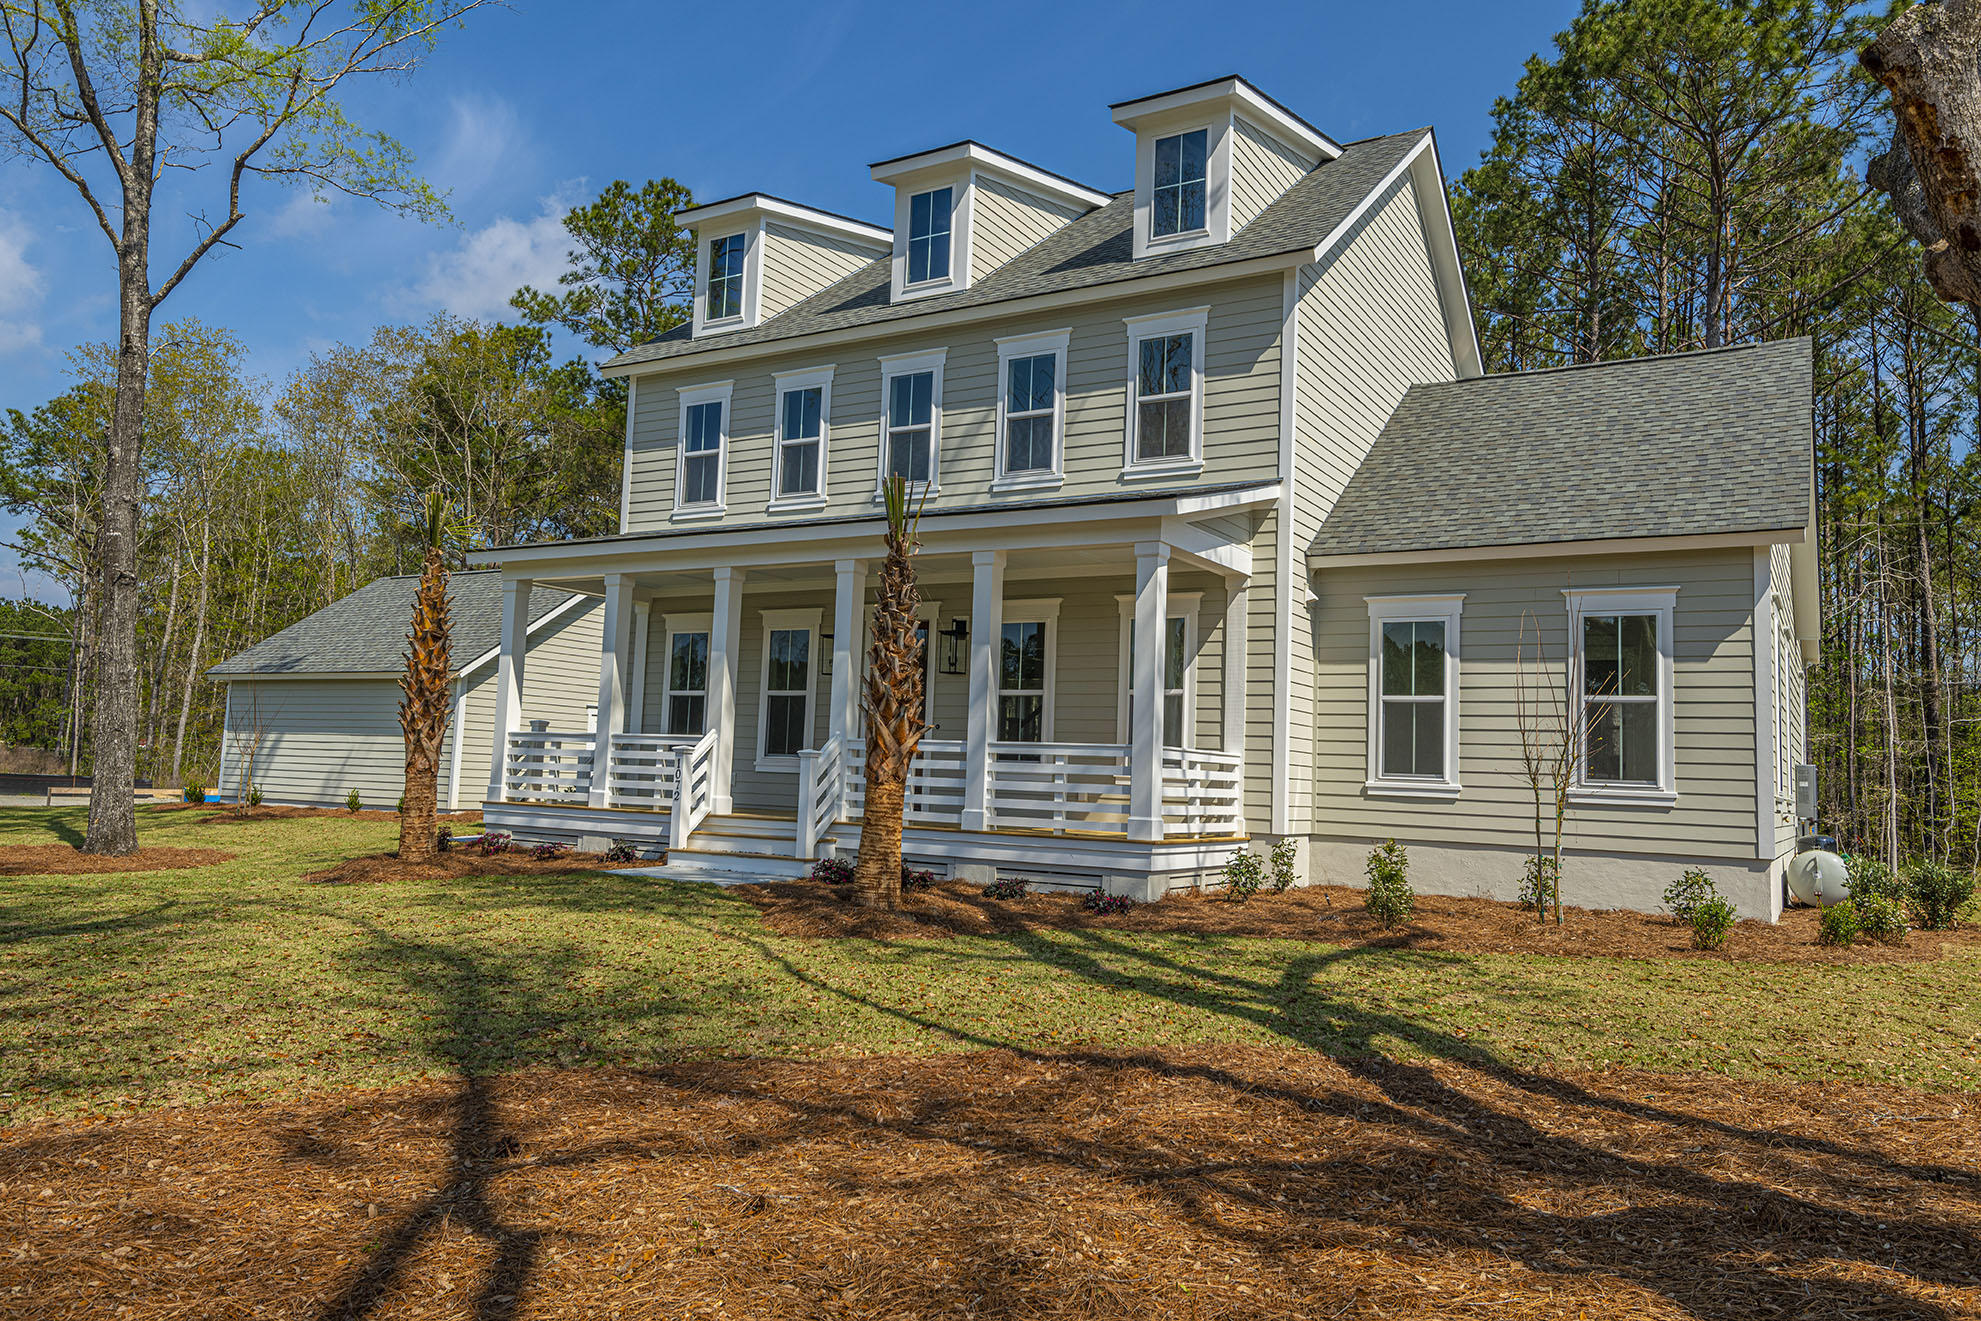 Awendaw Village Homes For Sale - 1072 Reserve, Awendaw, SC - 20